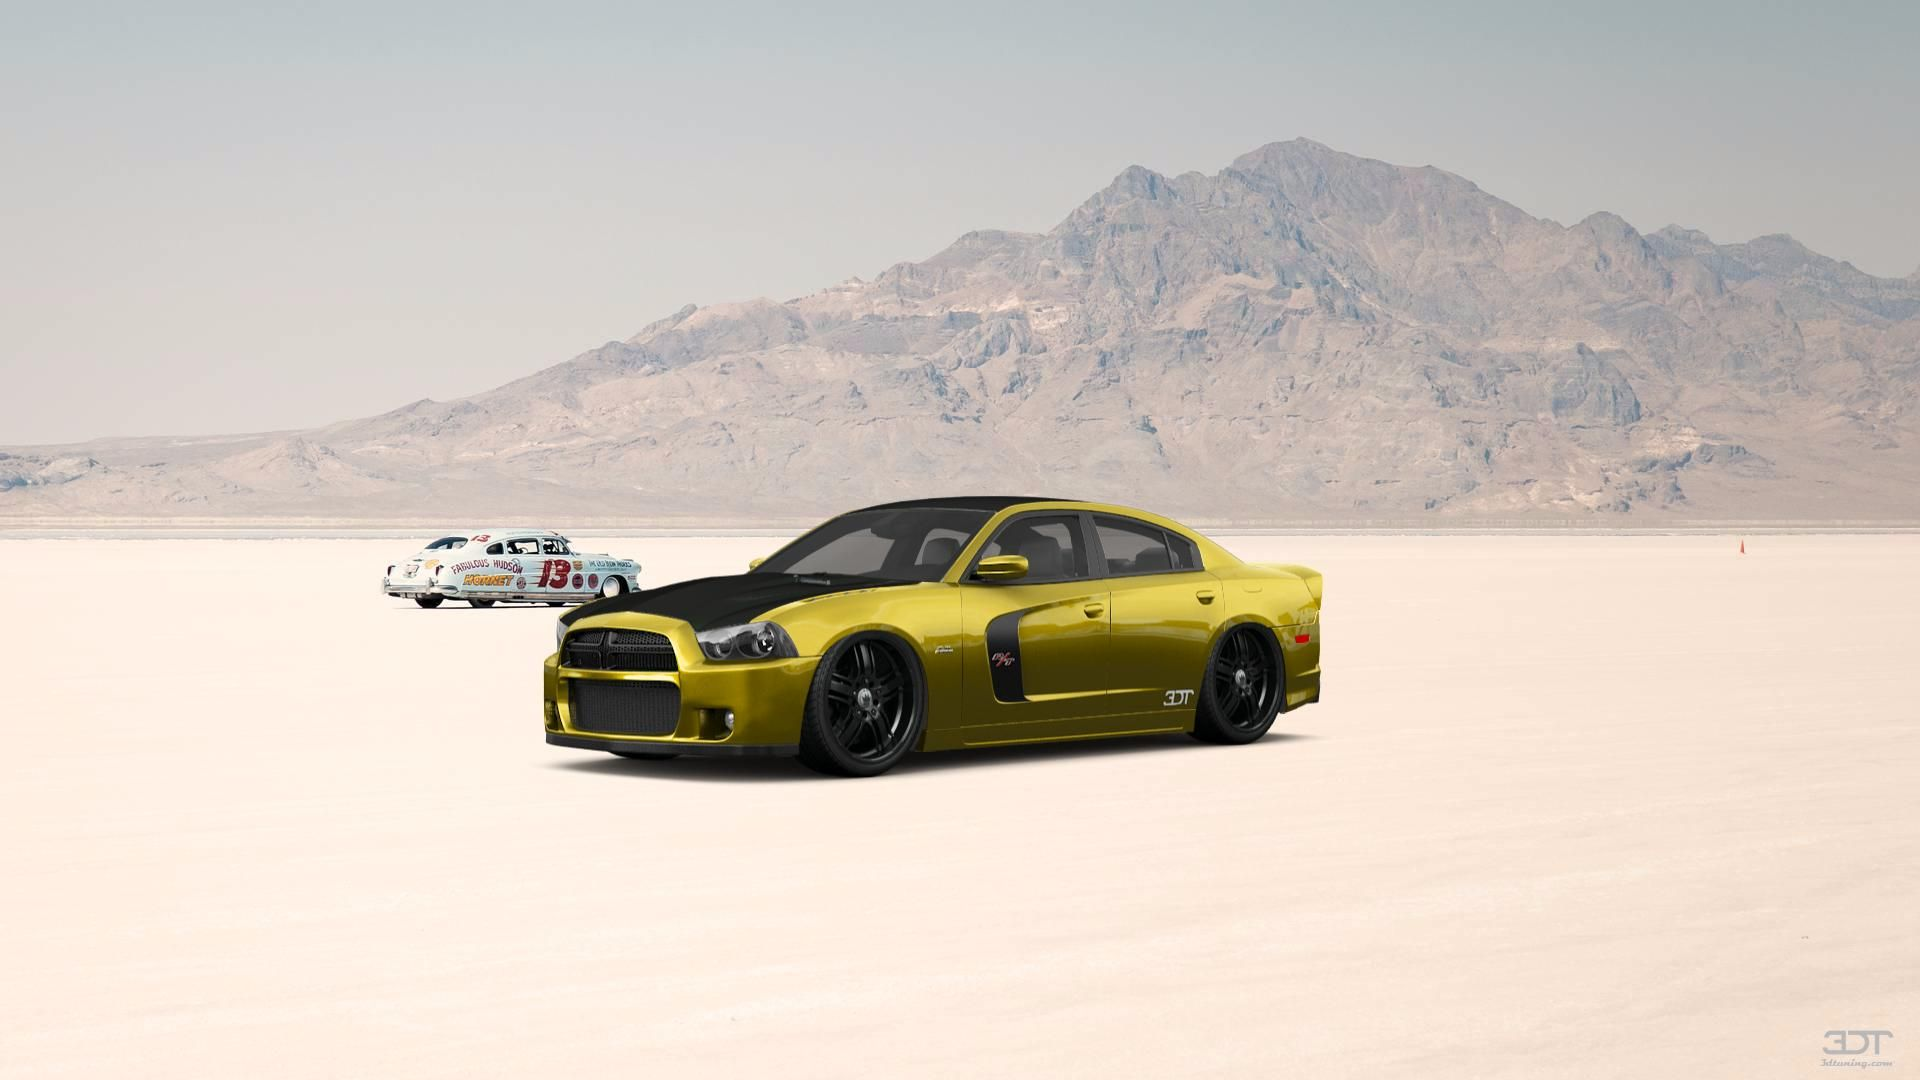 Checkout my tuning Dodge ChargerSRT8 2112 at 3DTuning 3dtuning